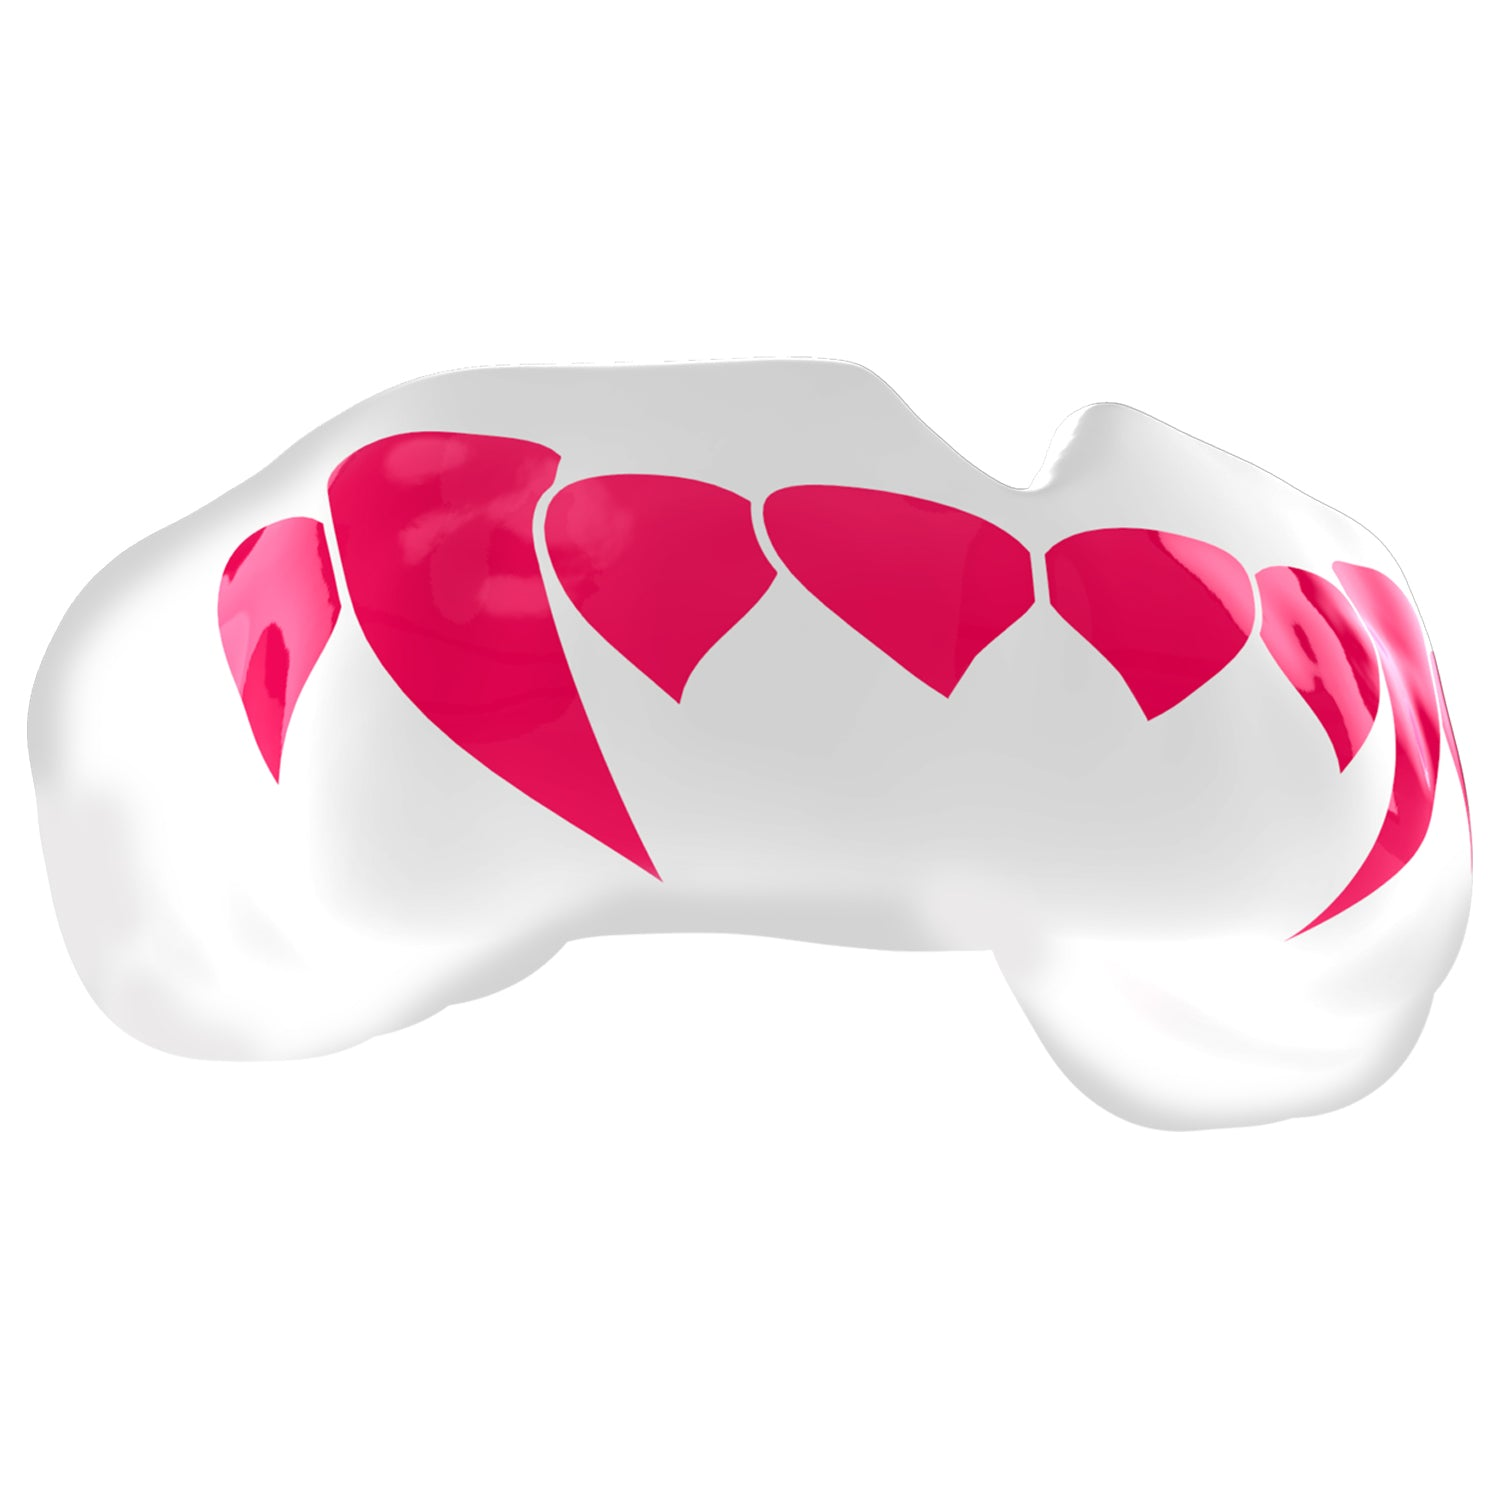 SAFEJAWZ® Popular Design Custom-fit Mouthguard - Pink Fangz